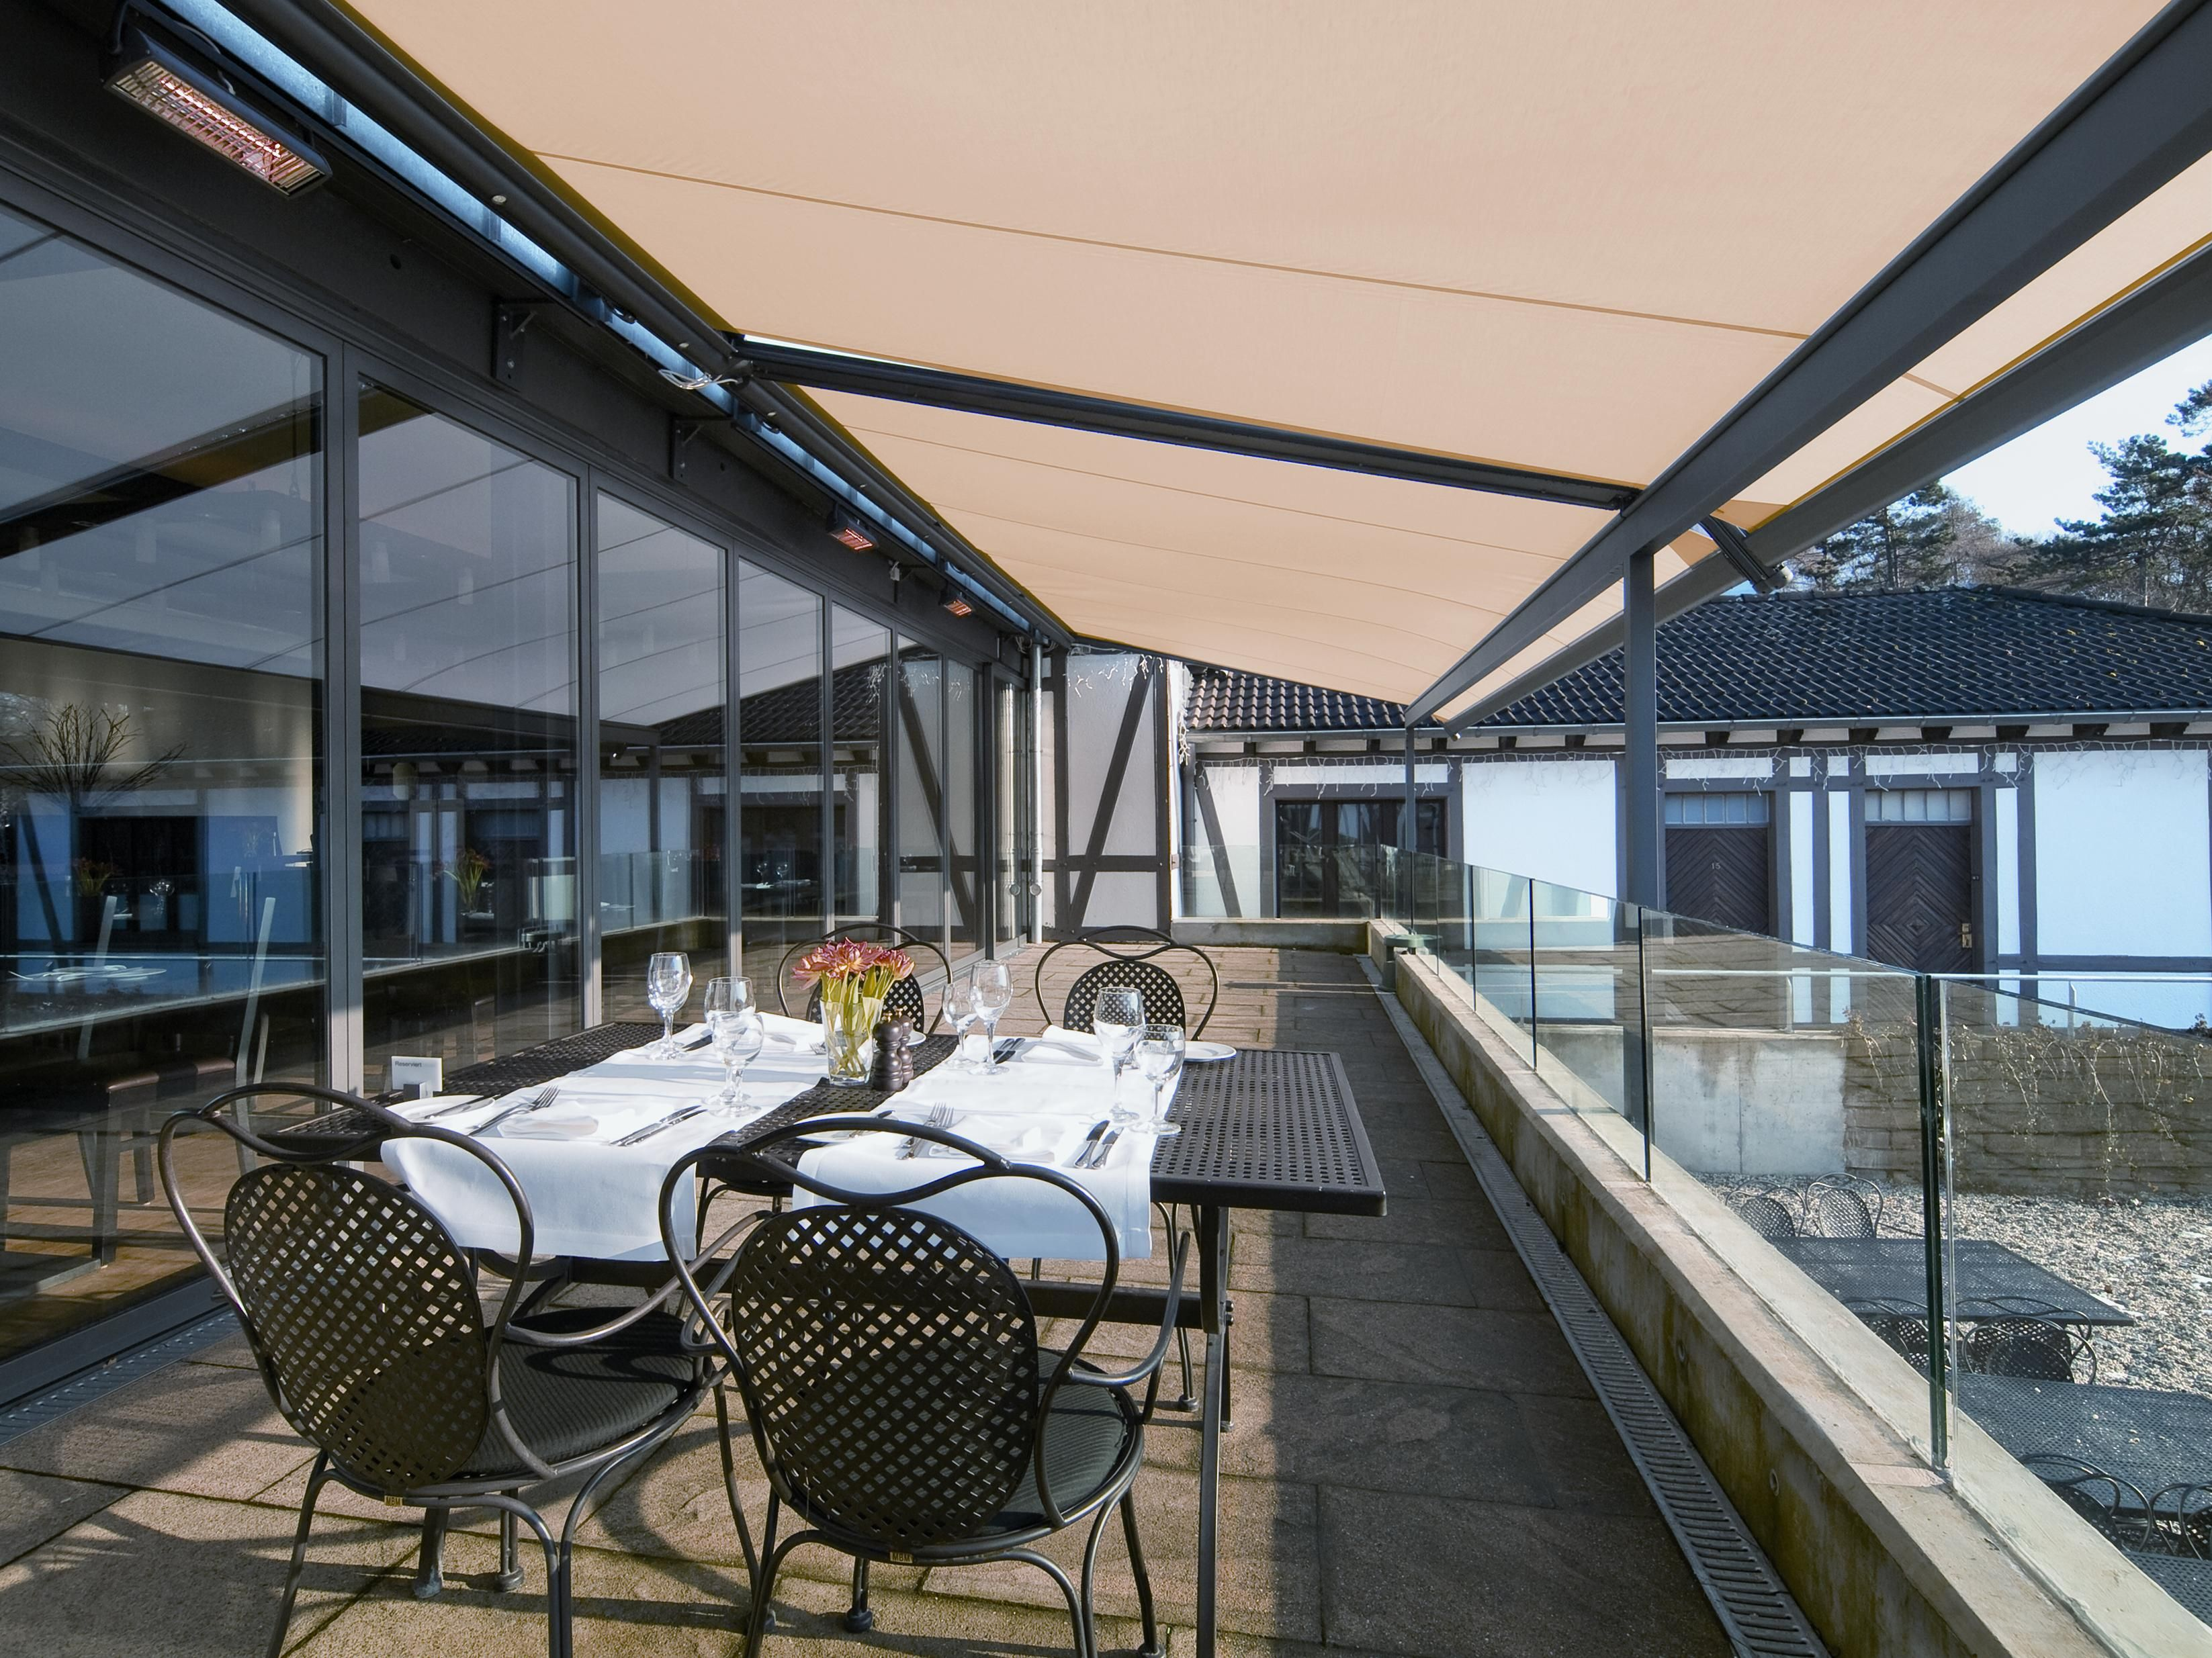 Email Your Dimensions To Sales Modernised Co Uk For Made To Measure Restaurant Awnings House Awnings Blinds Design House Blinds